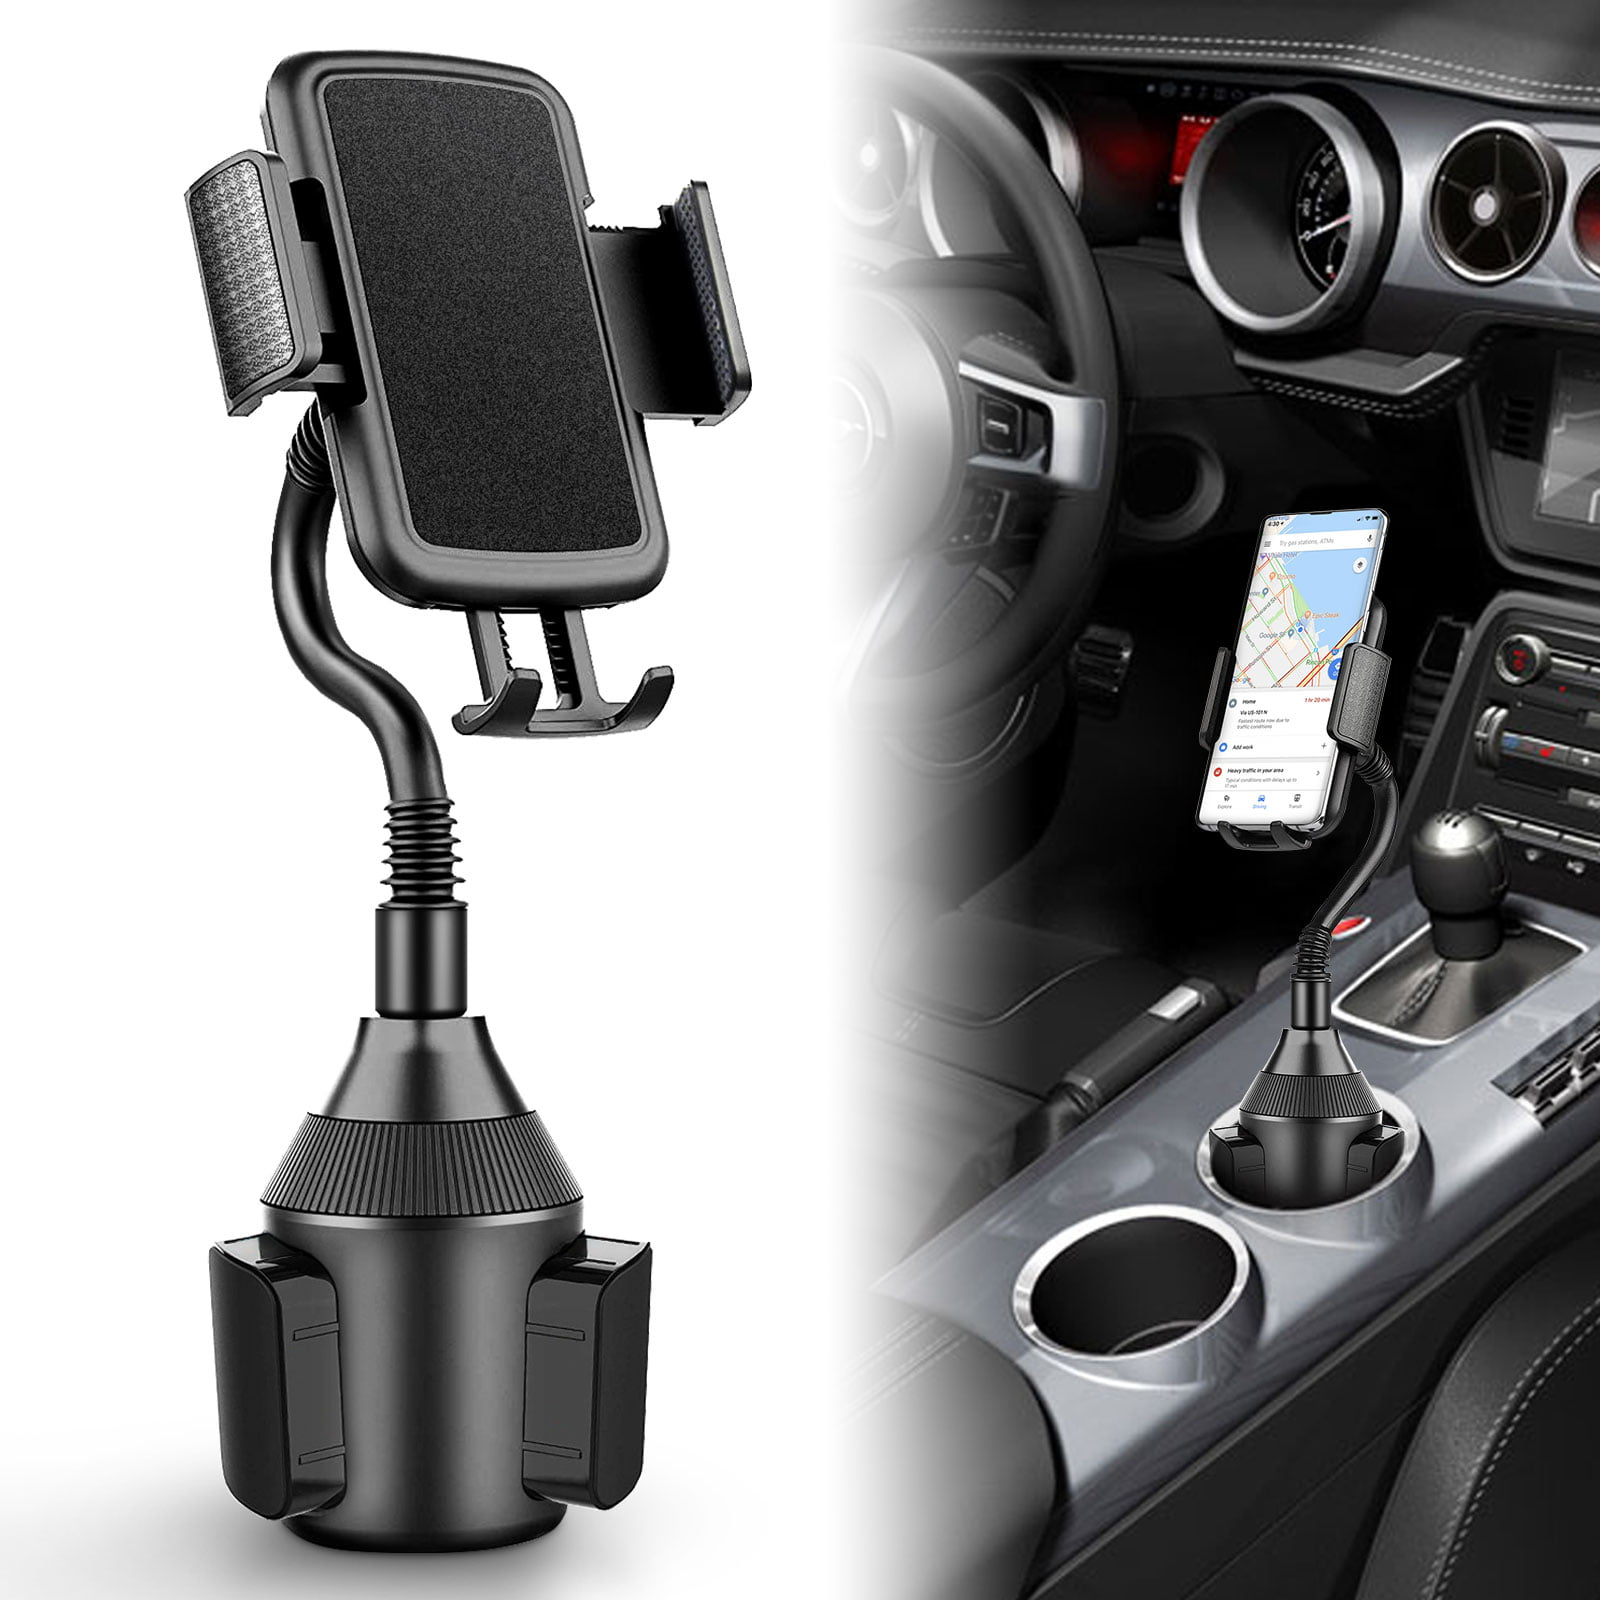 Car Cup Holder Phone Mount Samsung Universal Adjustable Portable Car Cradle Cup Holder Mount for iPhone 7 8 11 X XR XS Max